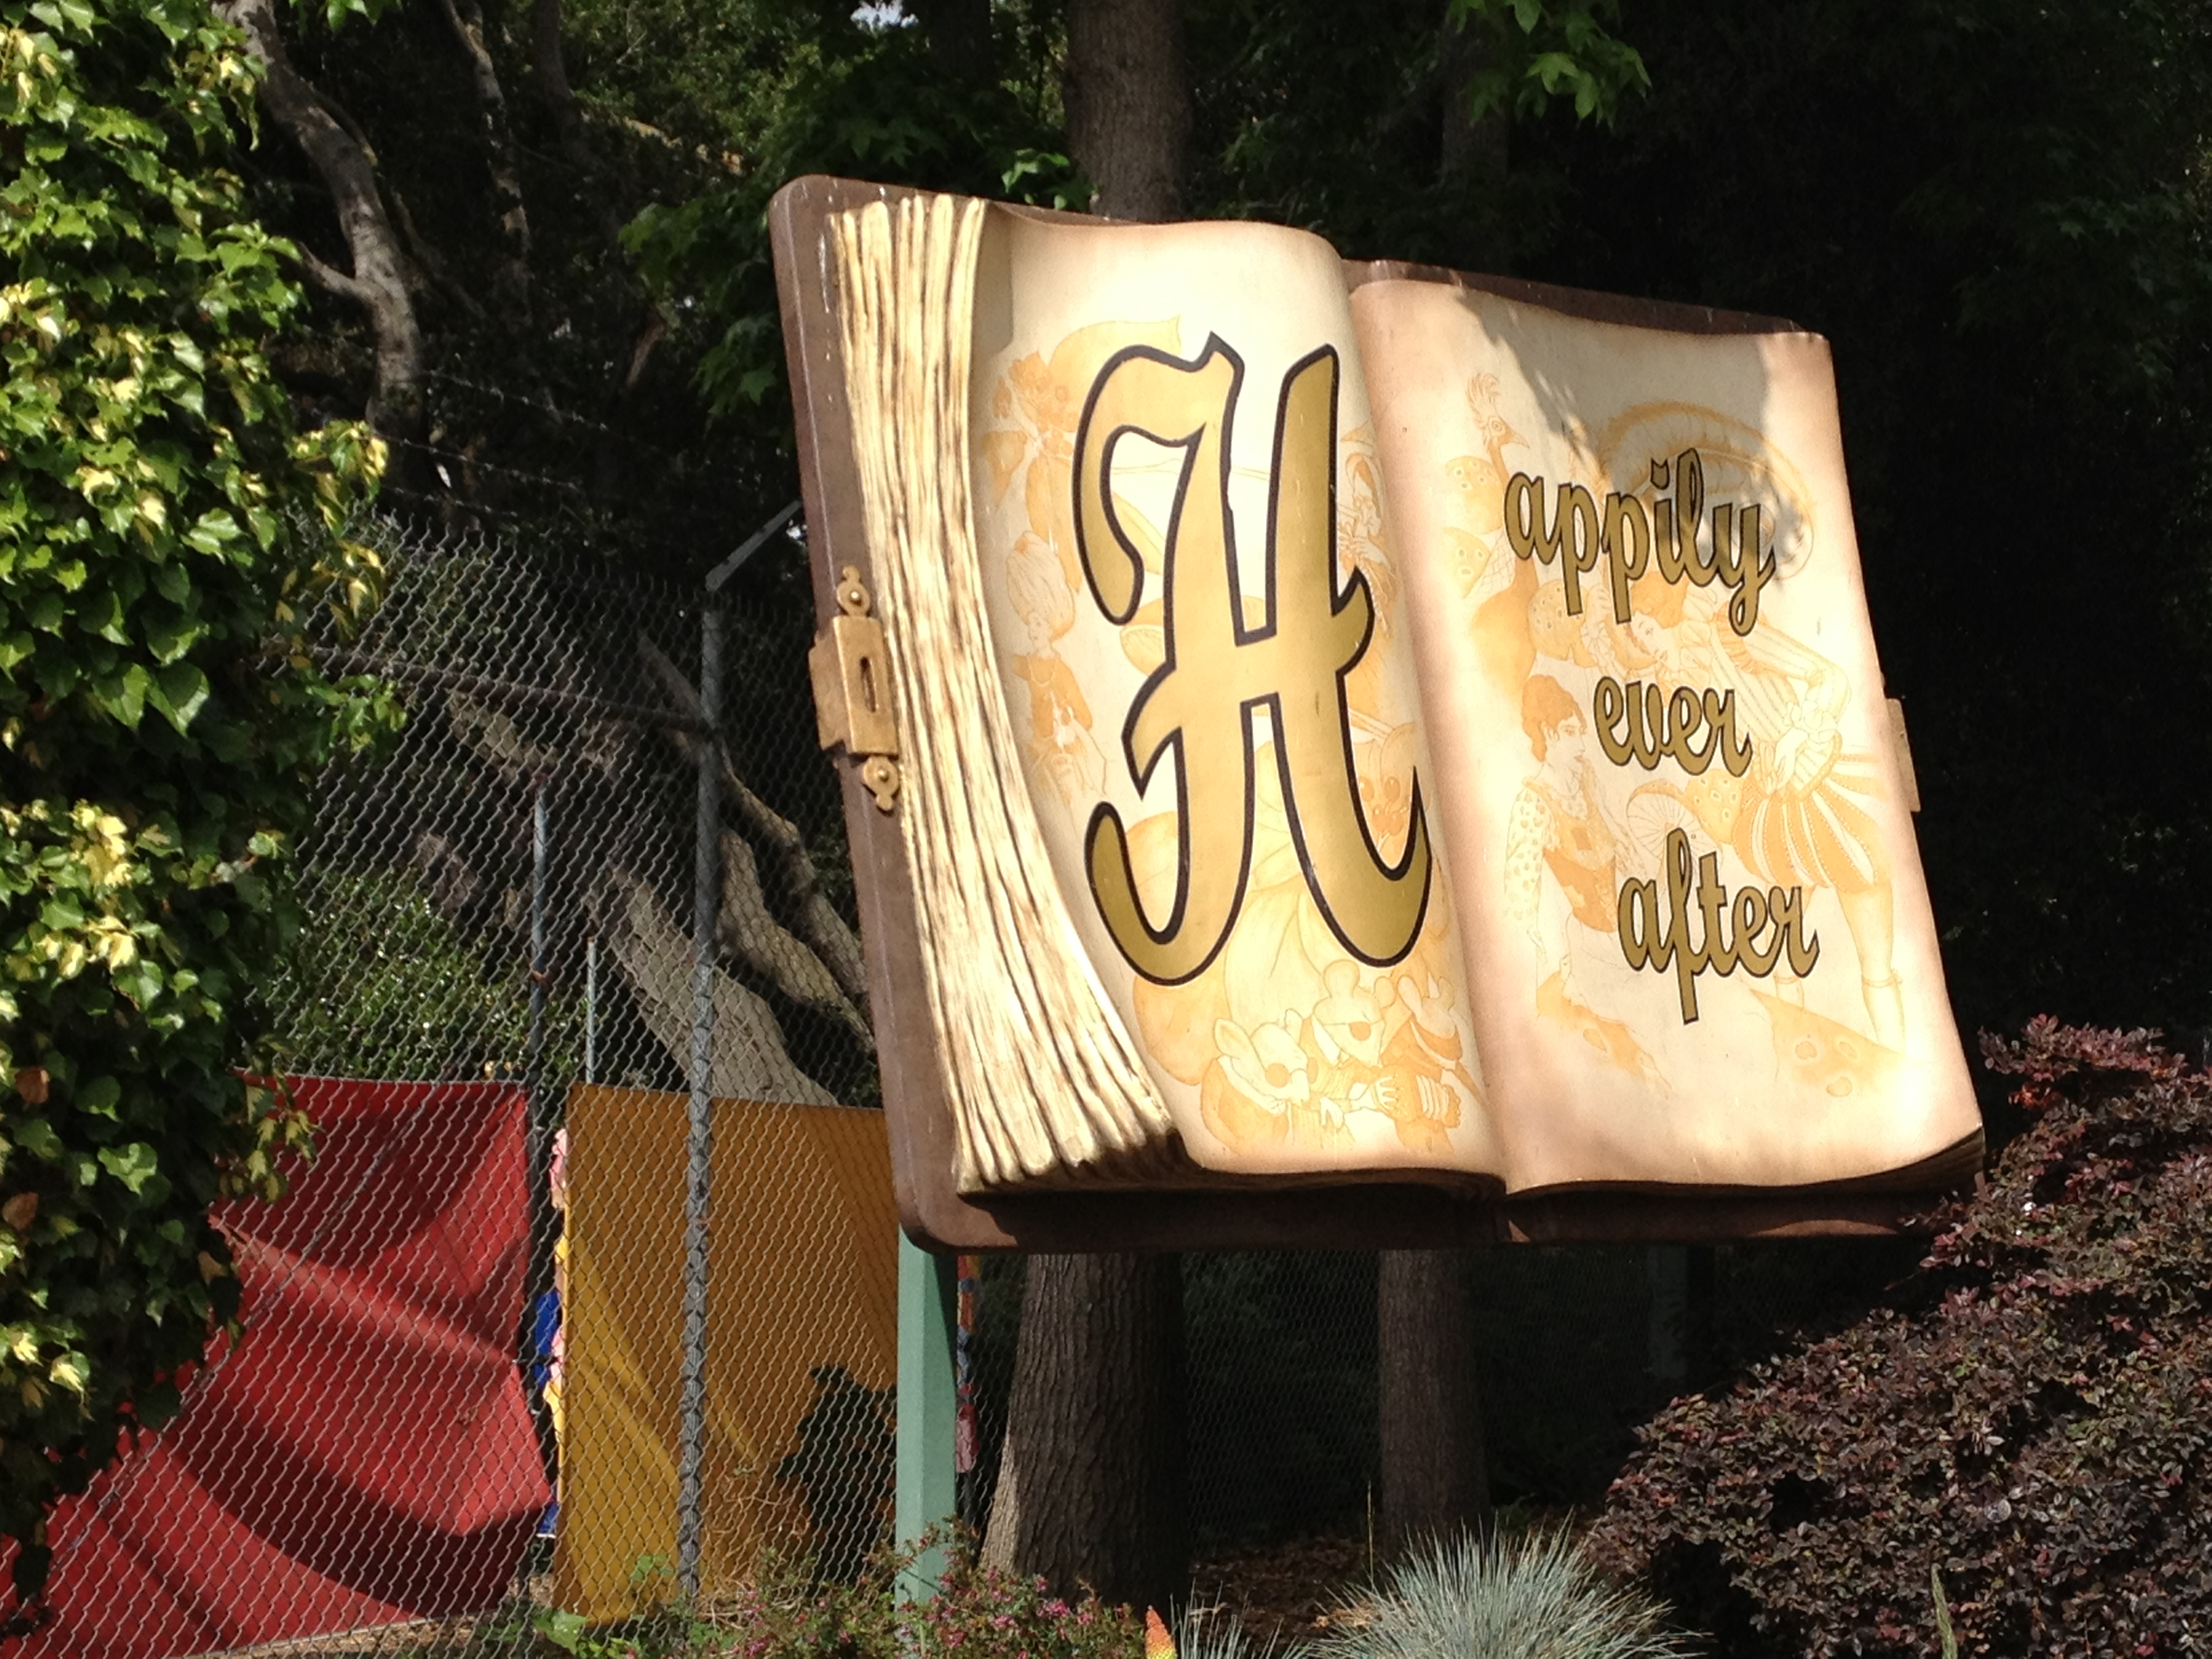 Happily ever after at Children's Fairyland